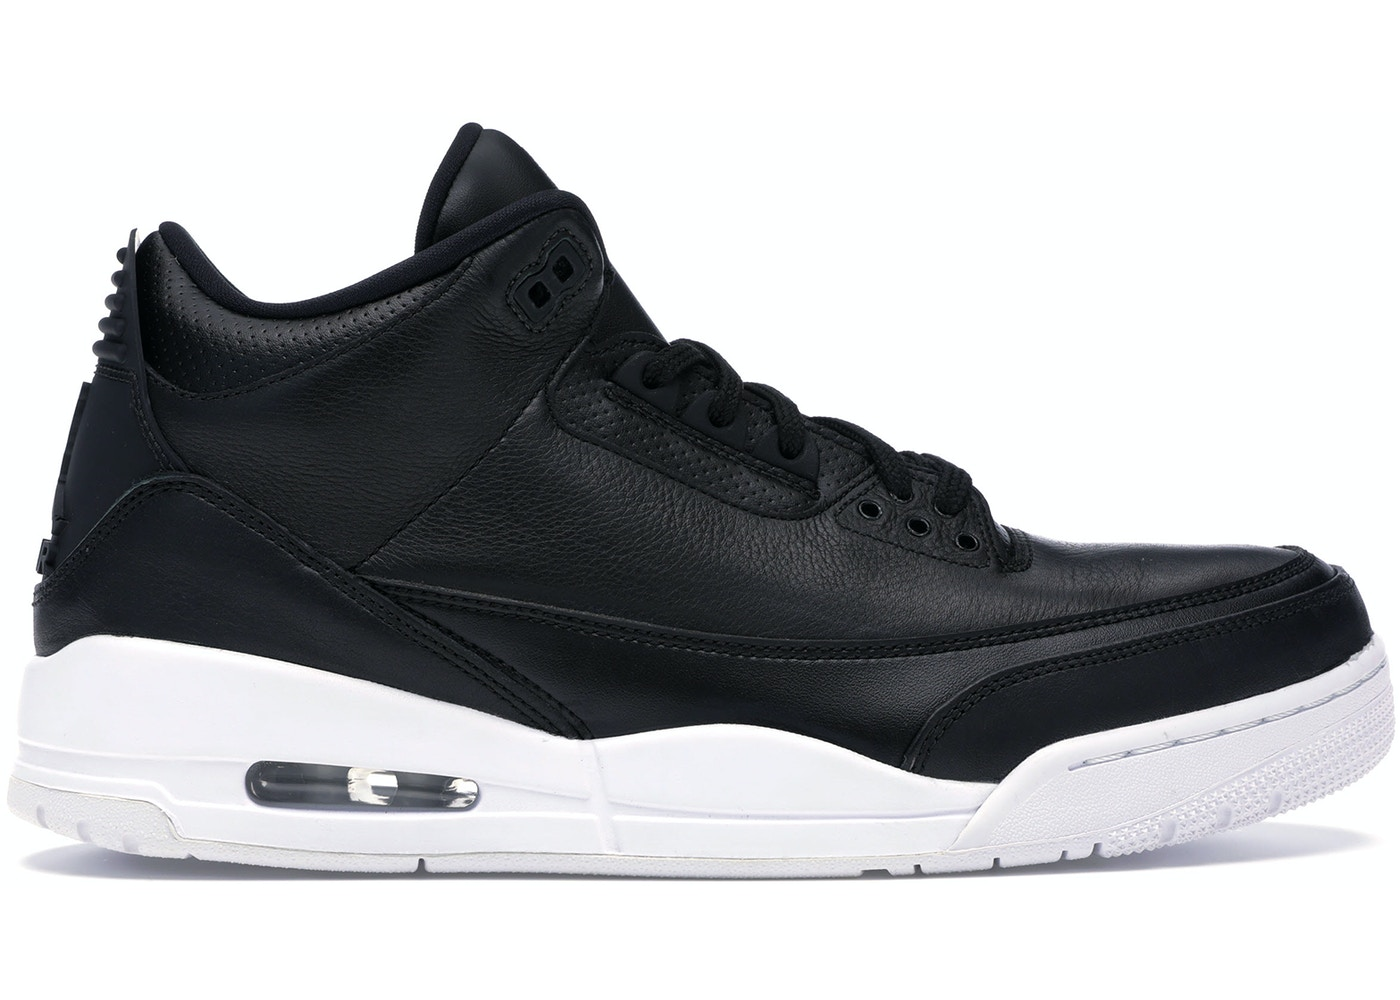 475be1039 Jordan 3 Retro Cyber Monday (2016) - 136064-020